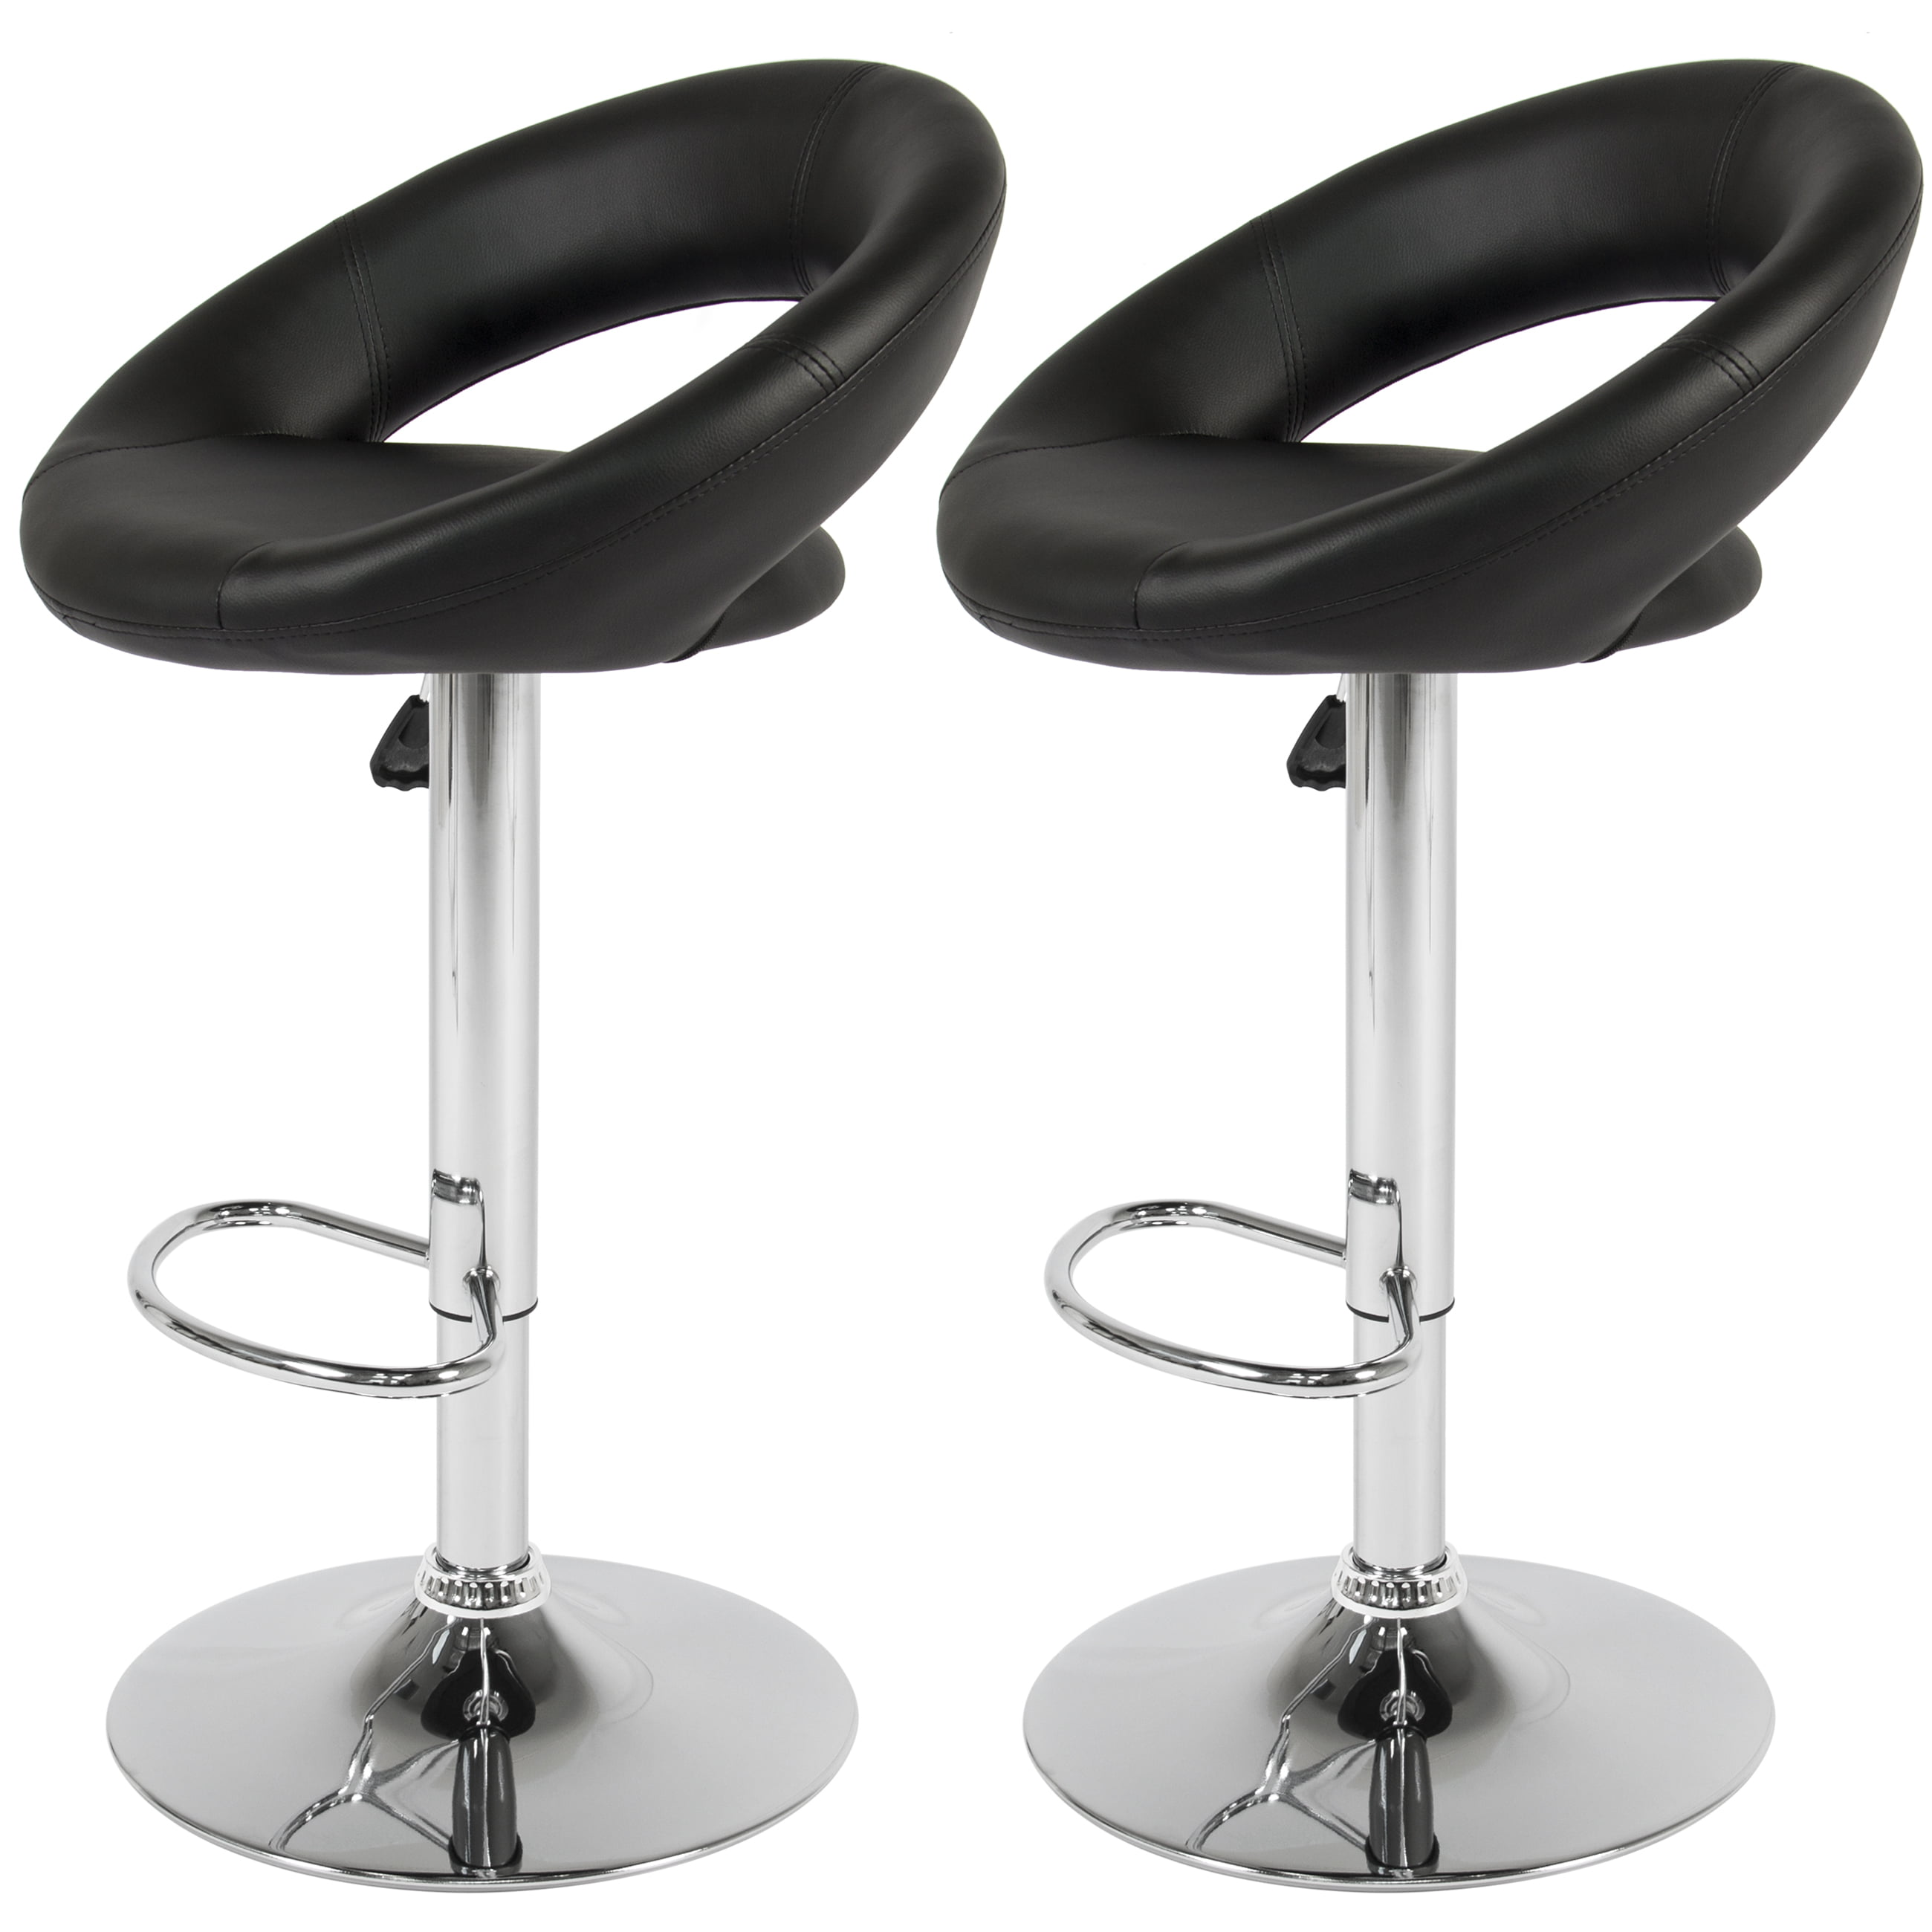 Ordinaire BCP Set Of 2 PU Leather Adjustable Swivel Bar Stool Hydraulic Barstool    Black   Walmart.com